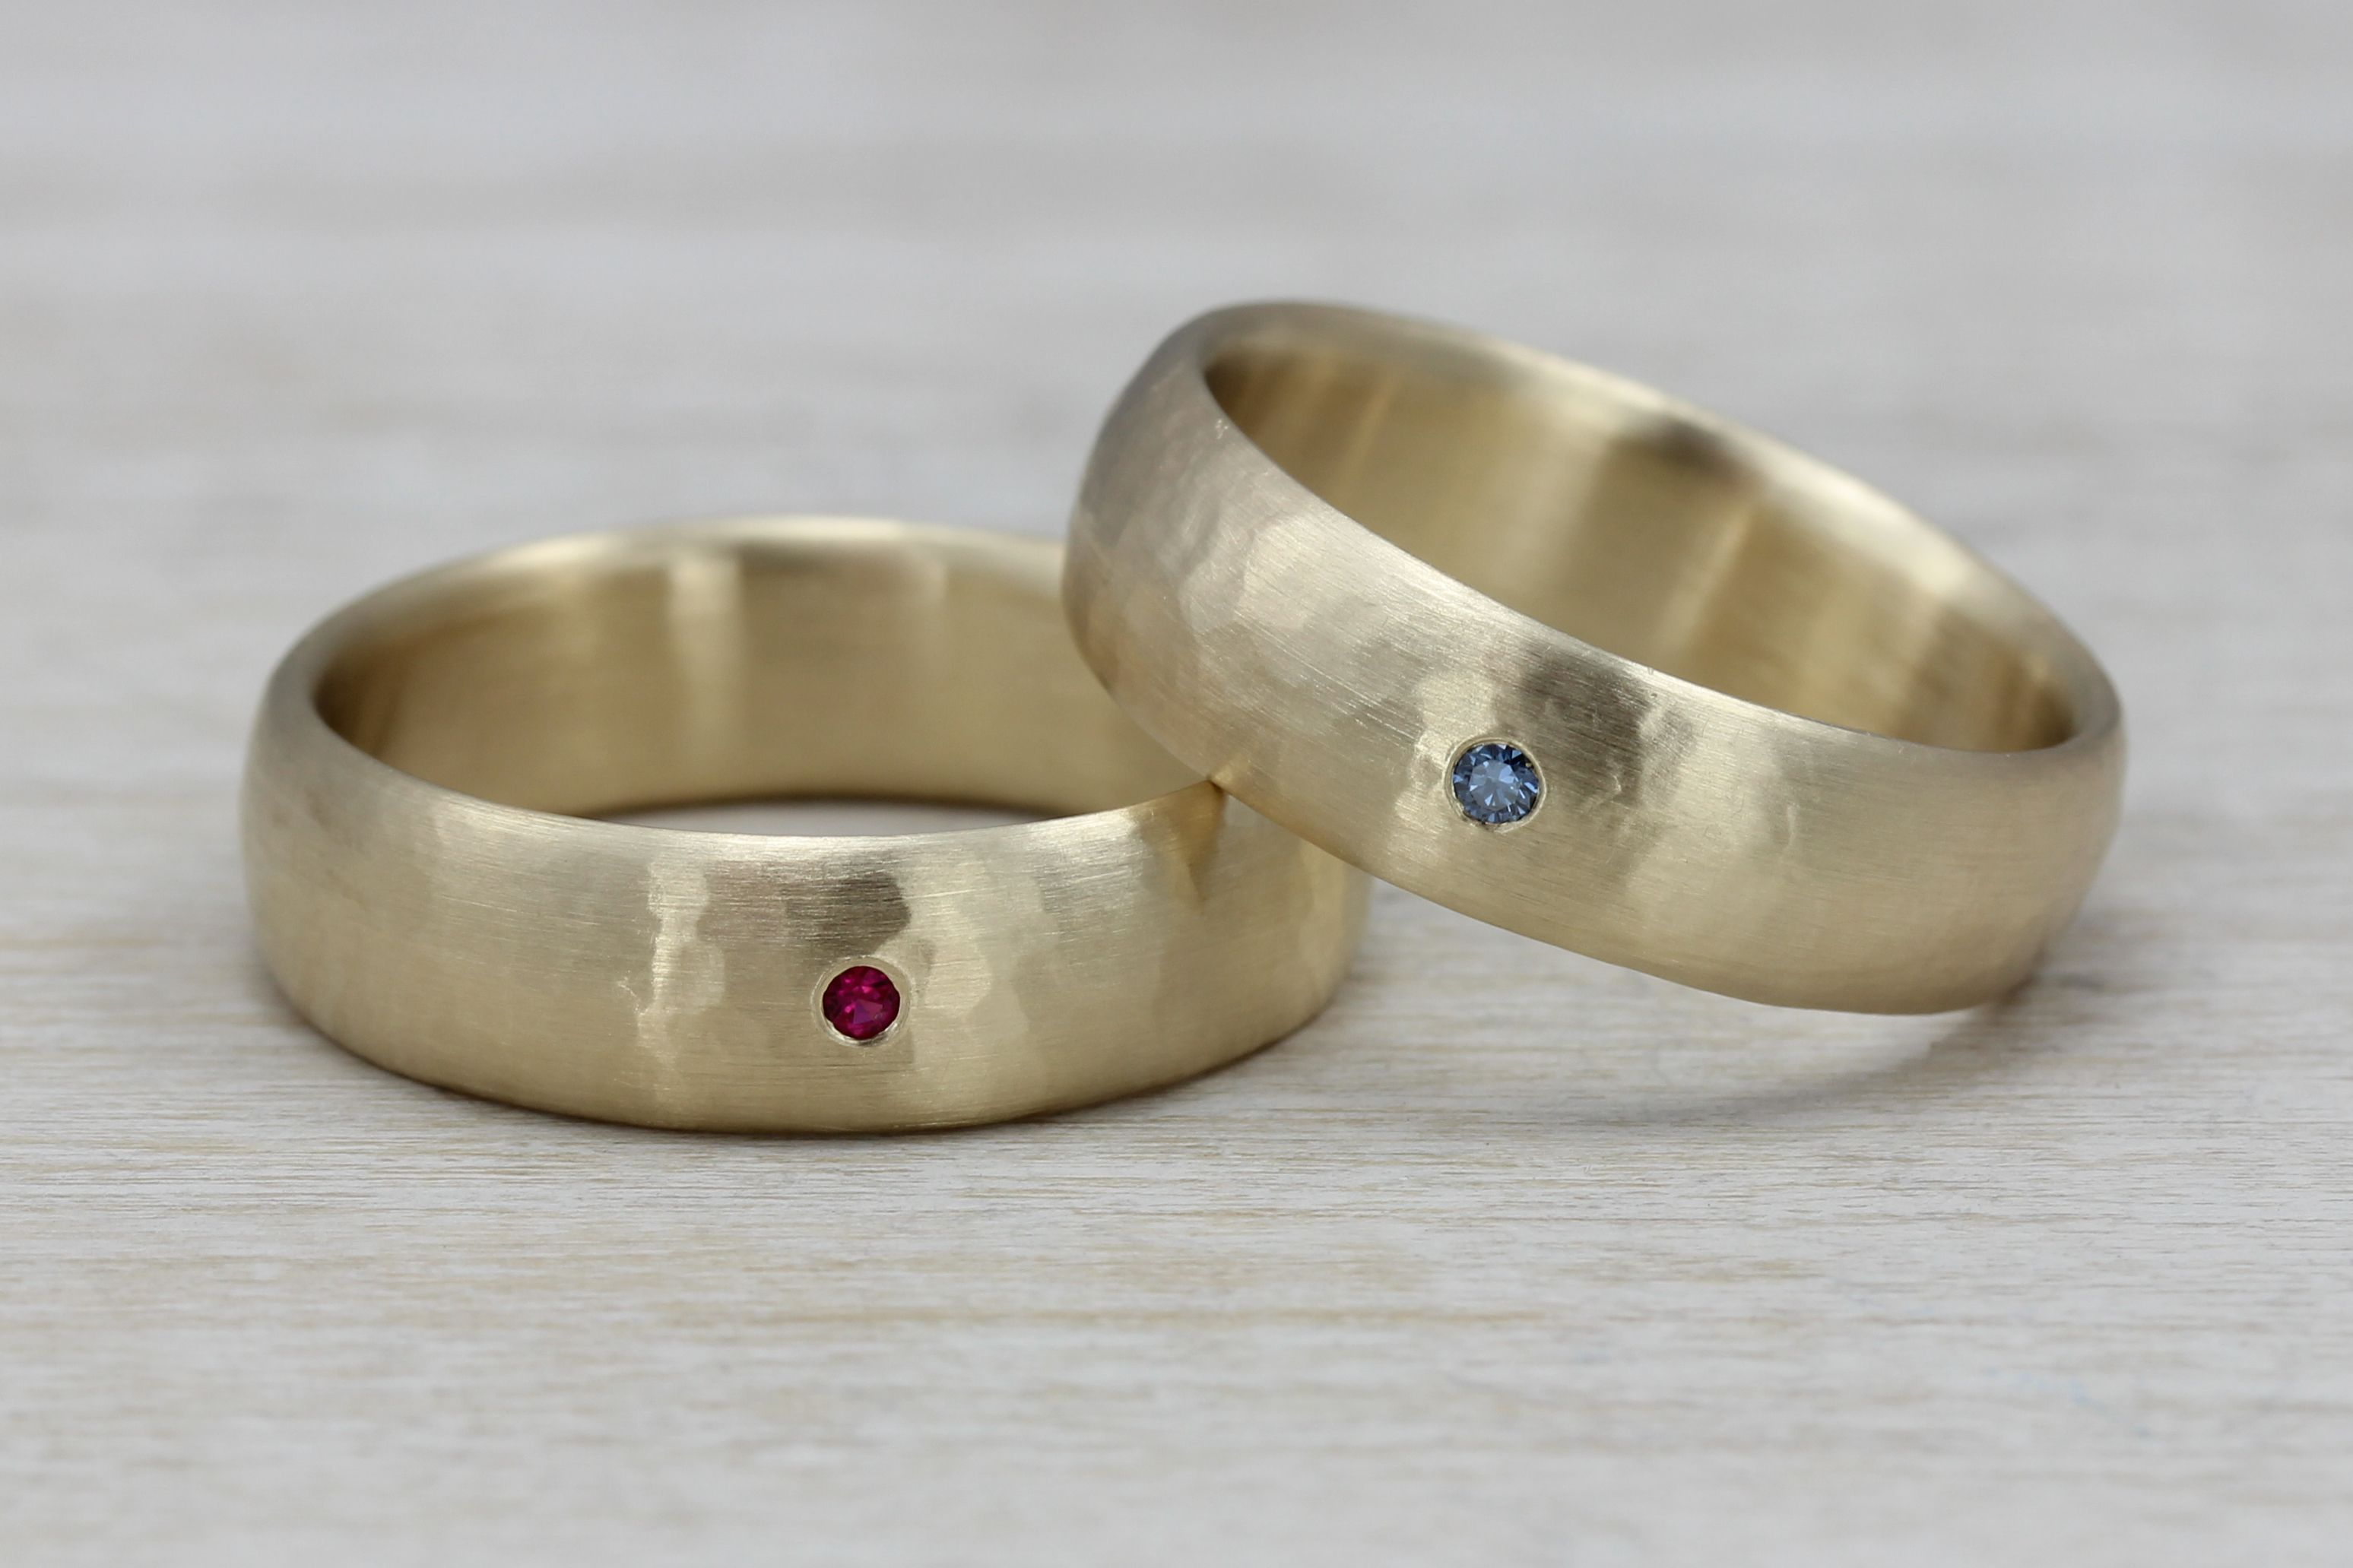 A Set Of Men S Wedding Bands Both Pictured In 6mm Width